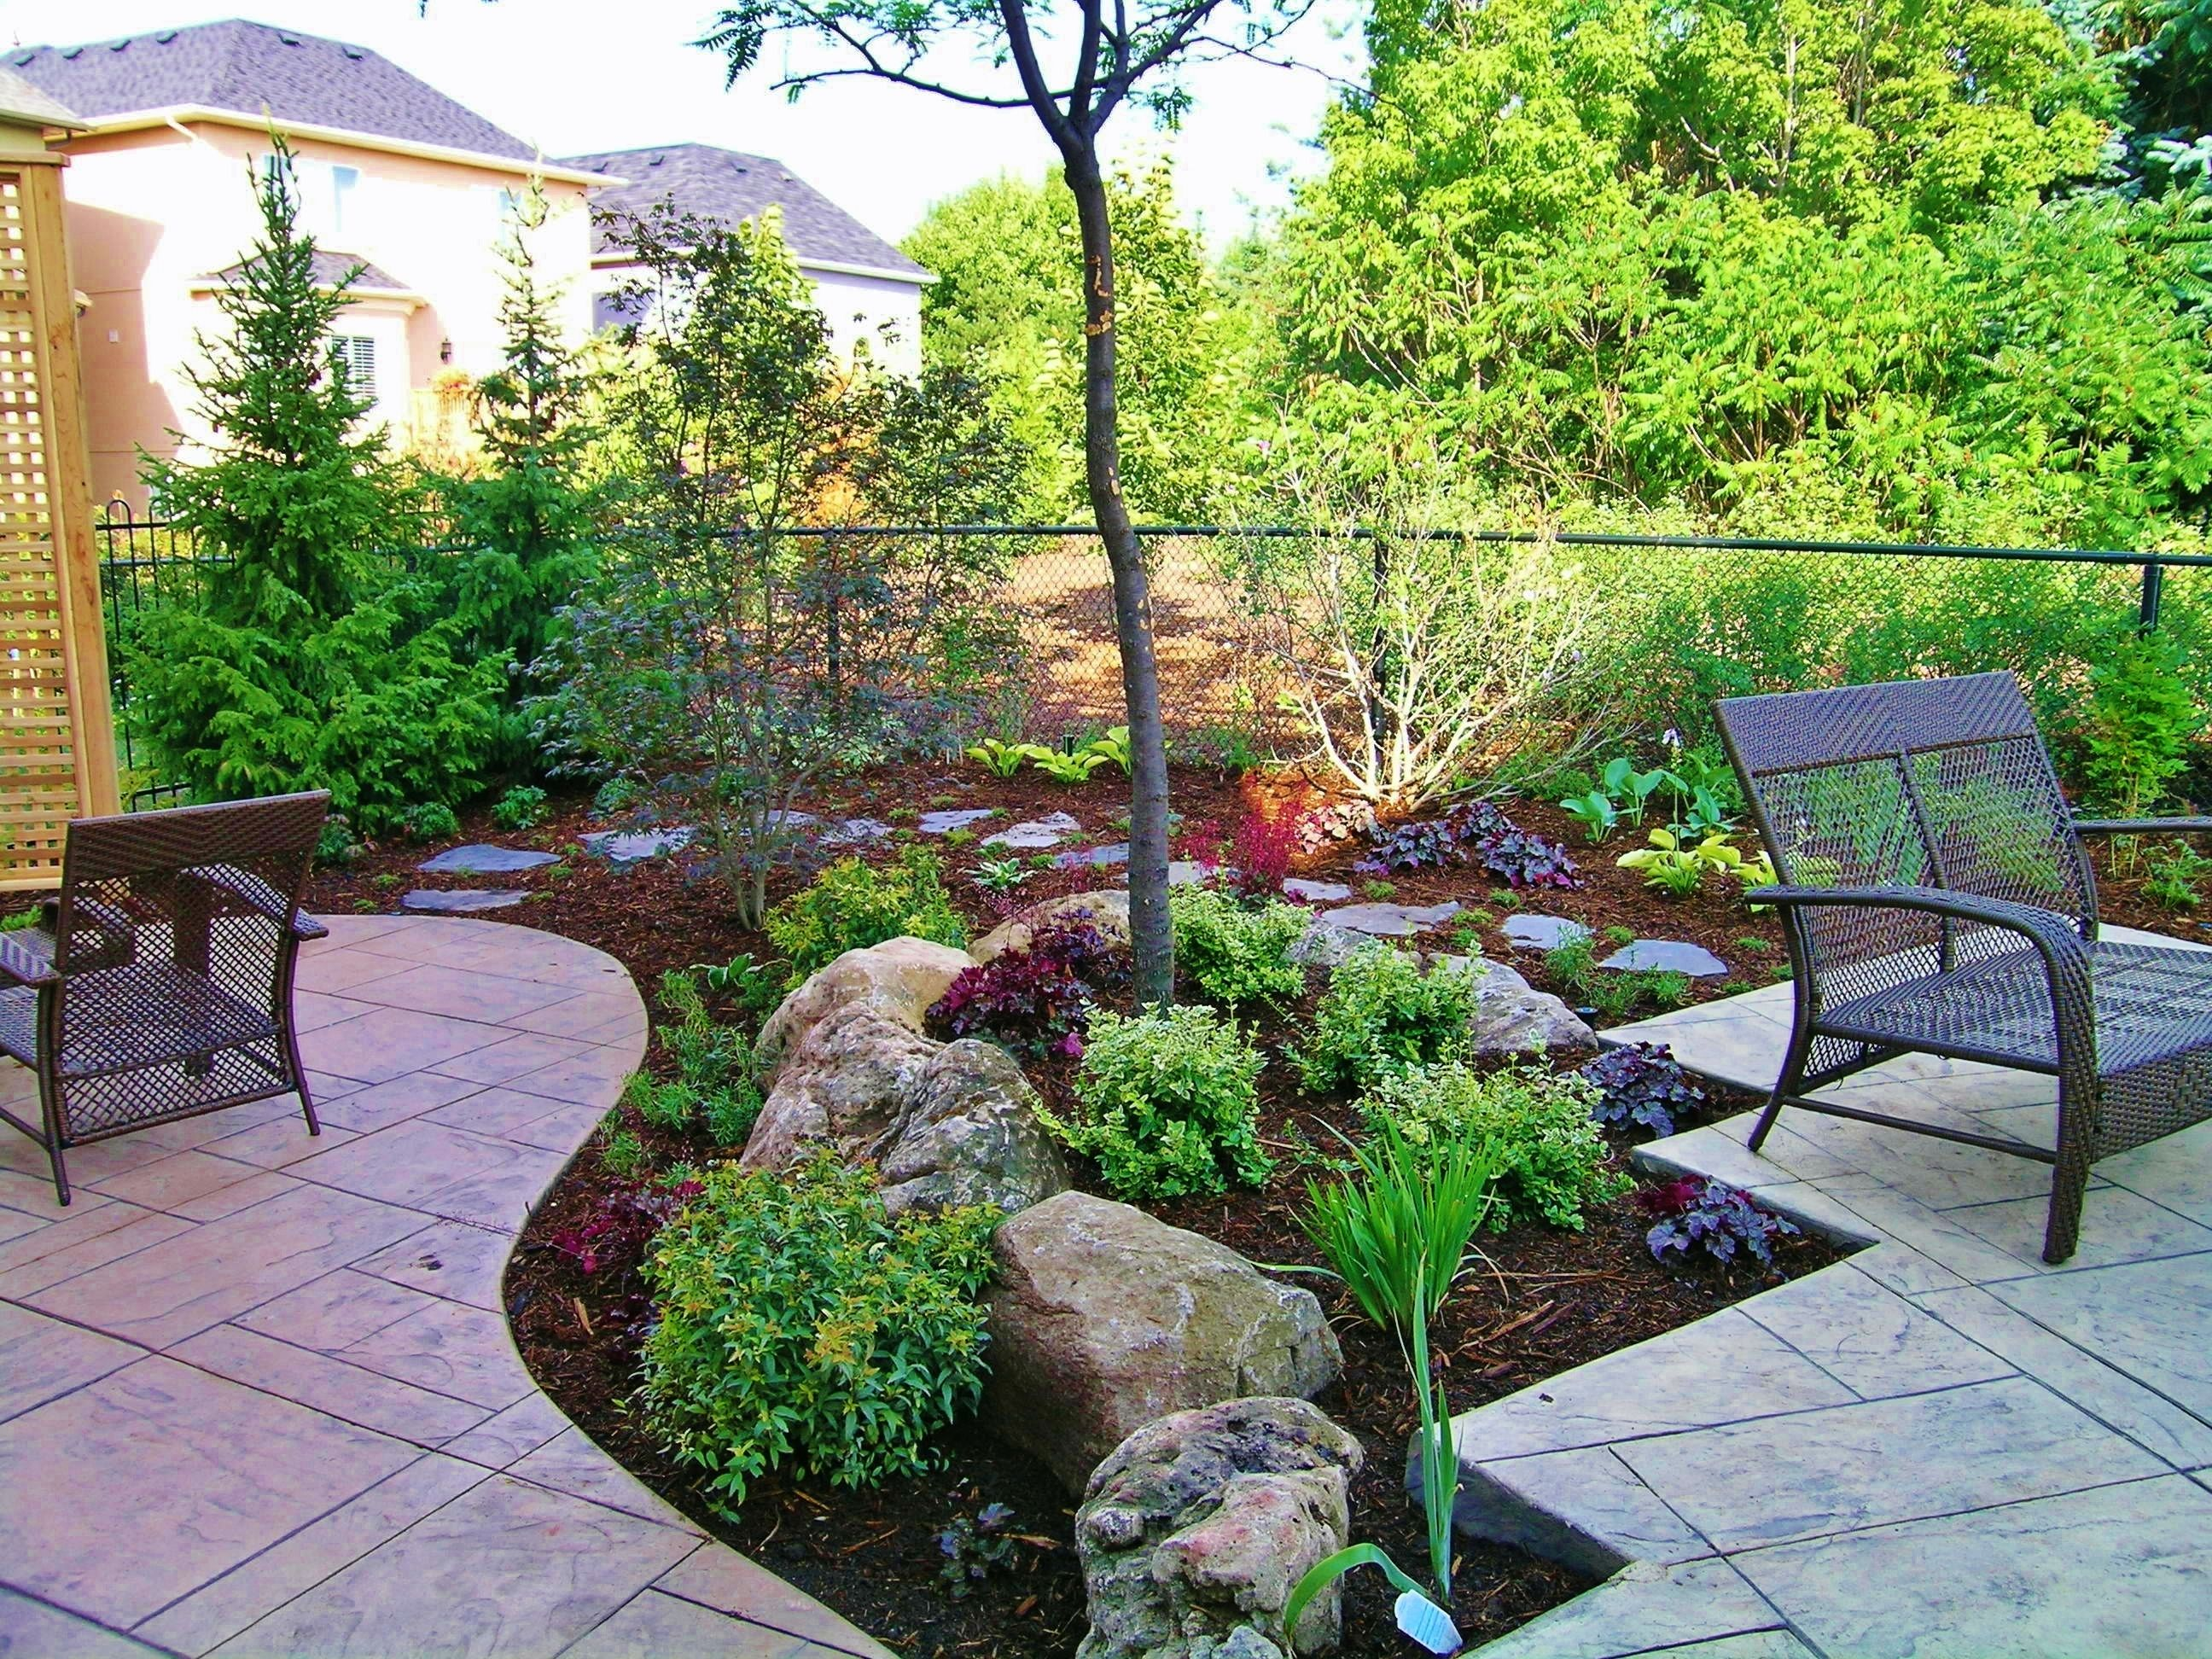 Backyard Without Grass Backyard Landscaping Plans Cheap Landscaping Ideas Small Backyard Gardens